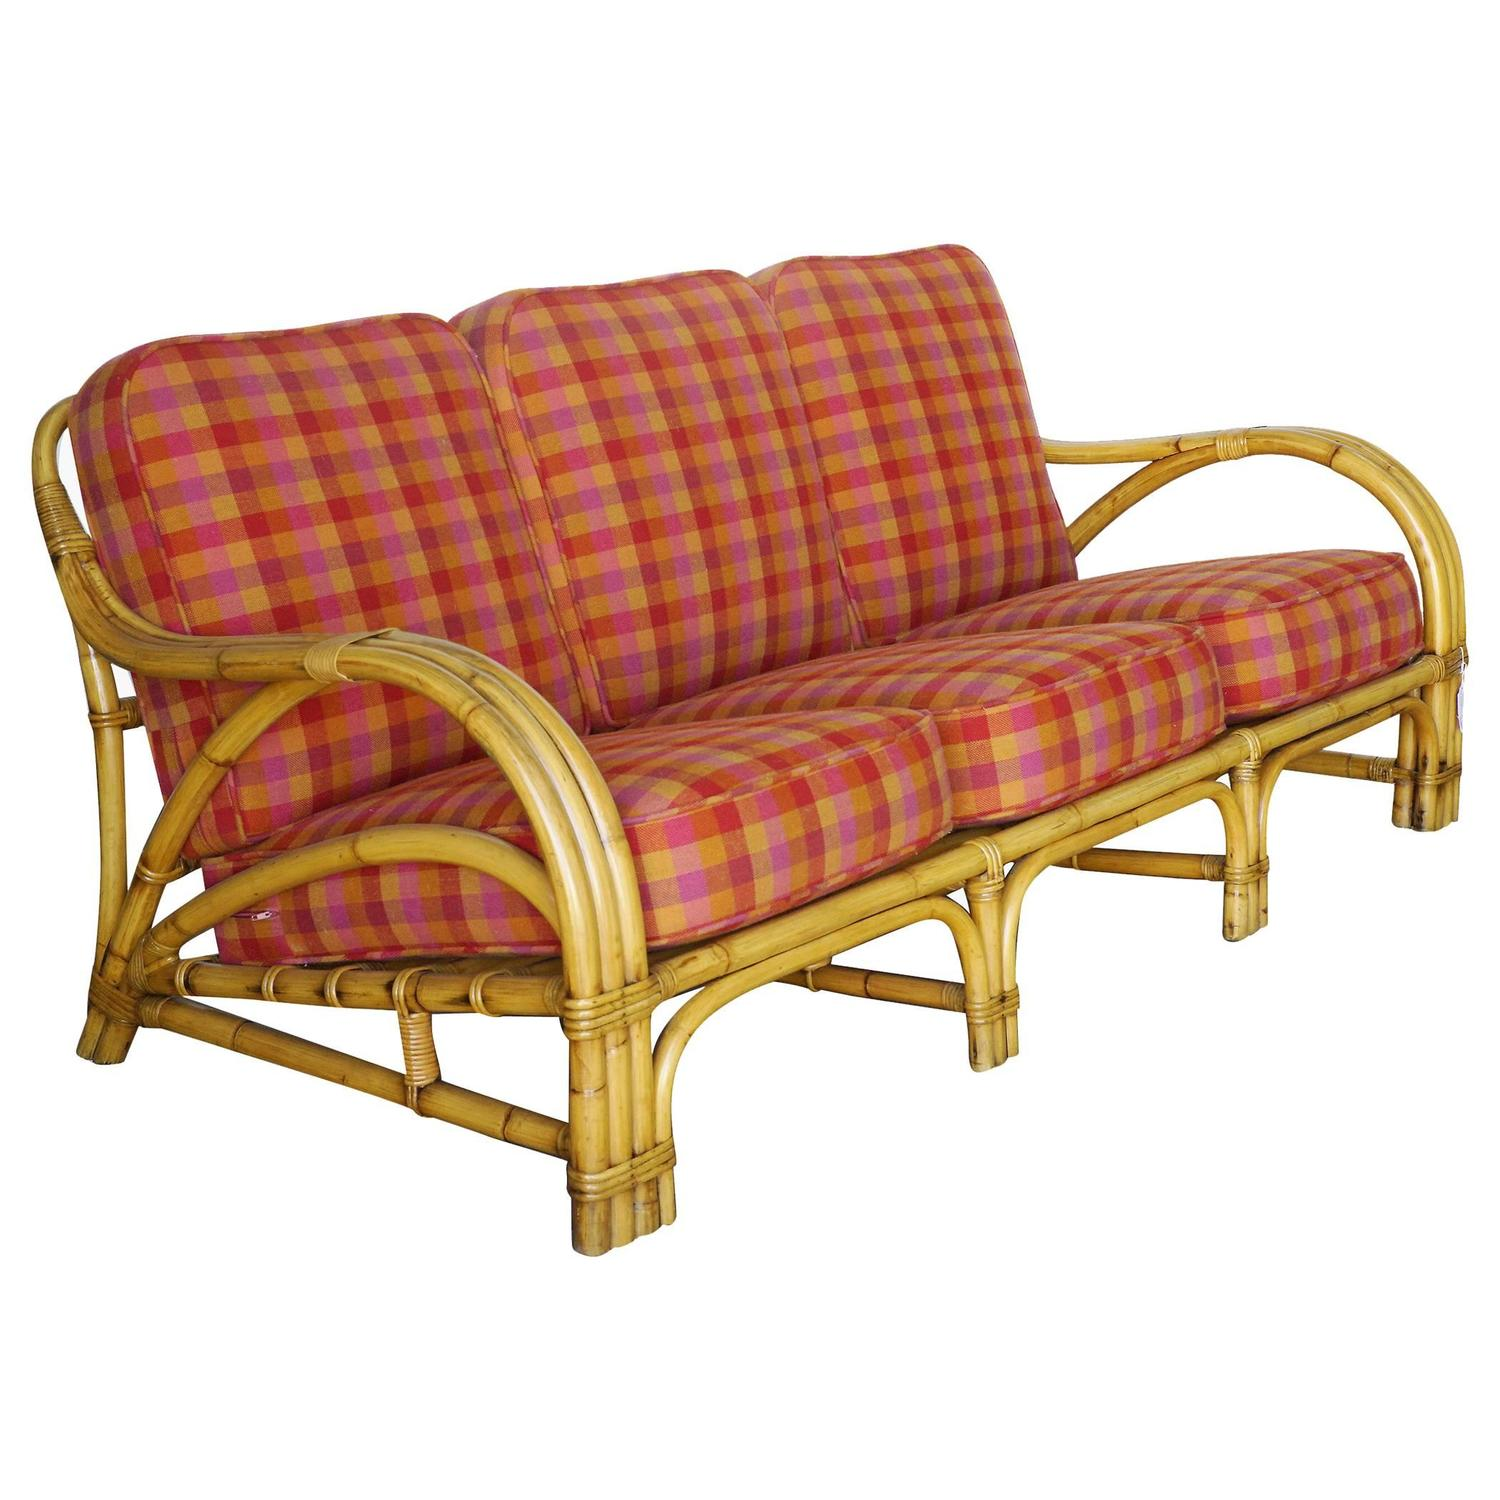 """Used Cane Sofa For Sale In Bangalore: Tropical """"1940s Transition"""" Three-Seat Rattan Sofa For"""